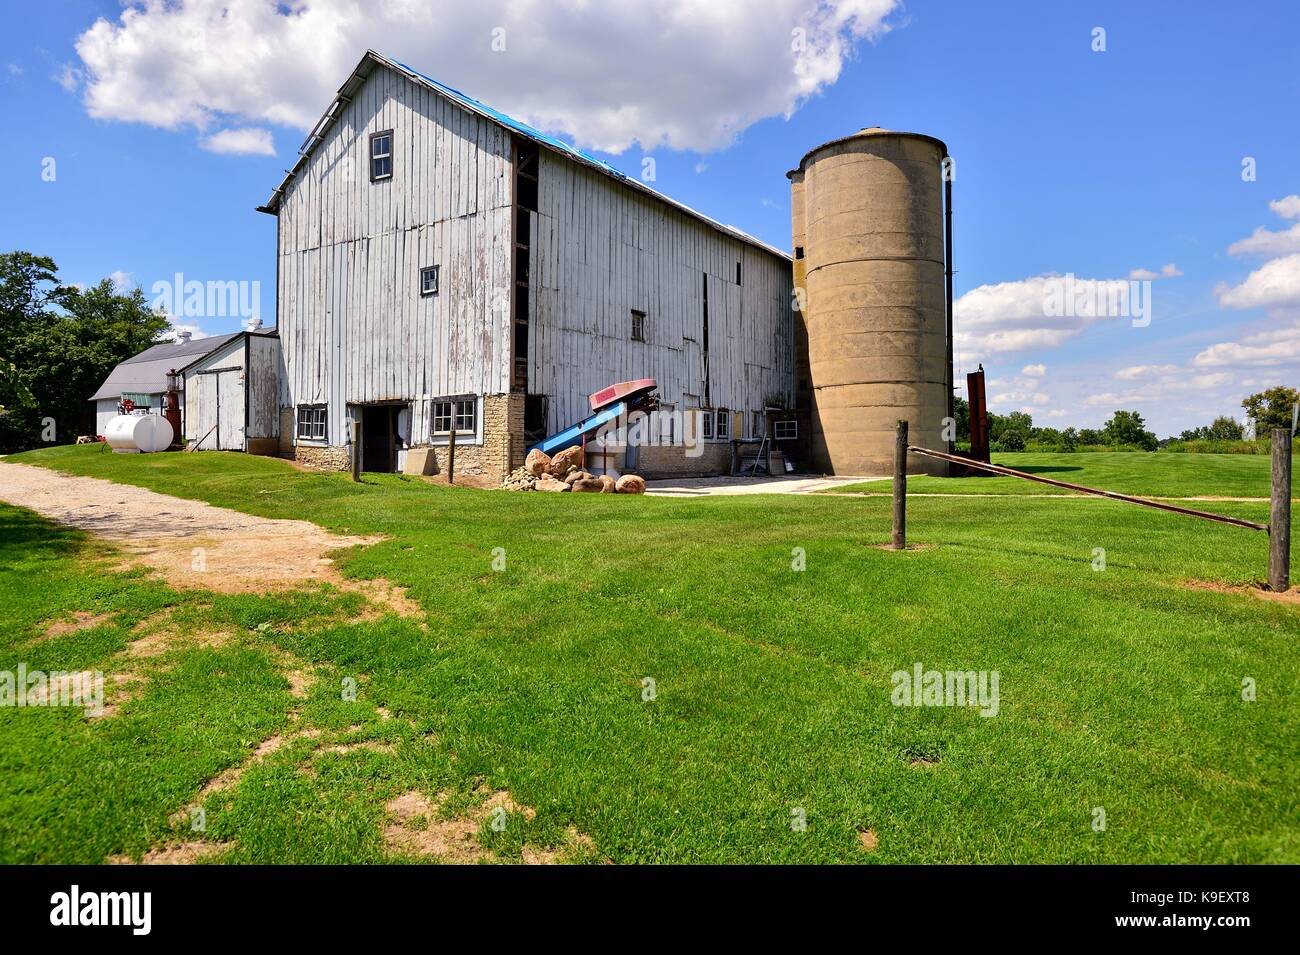 A vintage barn in northeastern Illinois. The design and barn date back to the 19th century. St. Charles, Illinois, - Stock Image